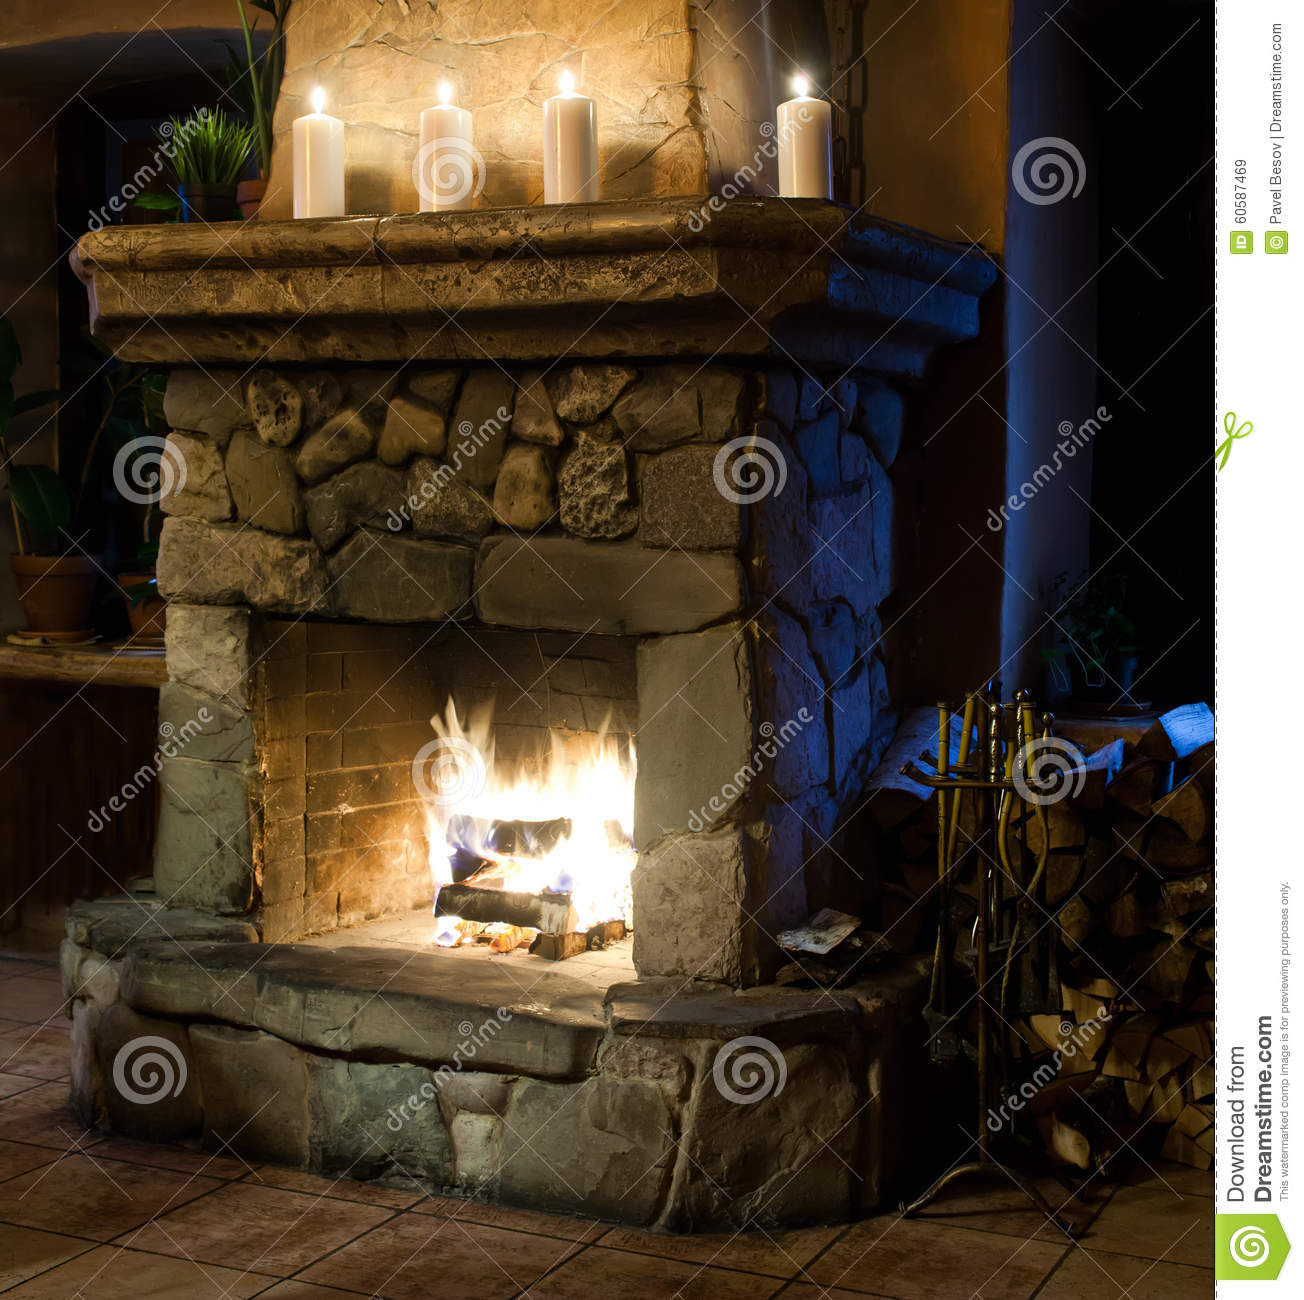 Vintage Style Fireplace Room Chimney Candles And